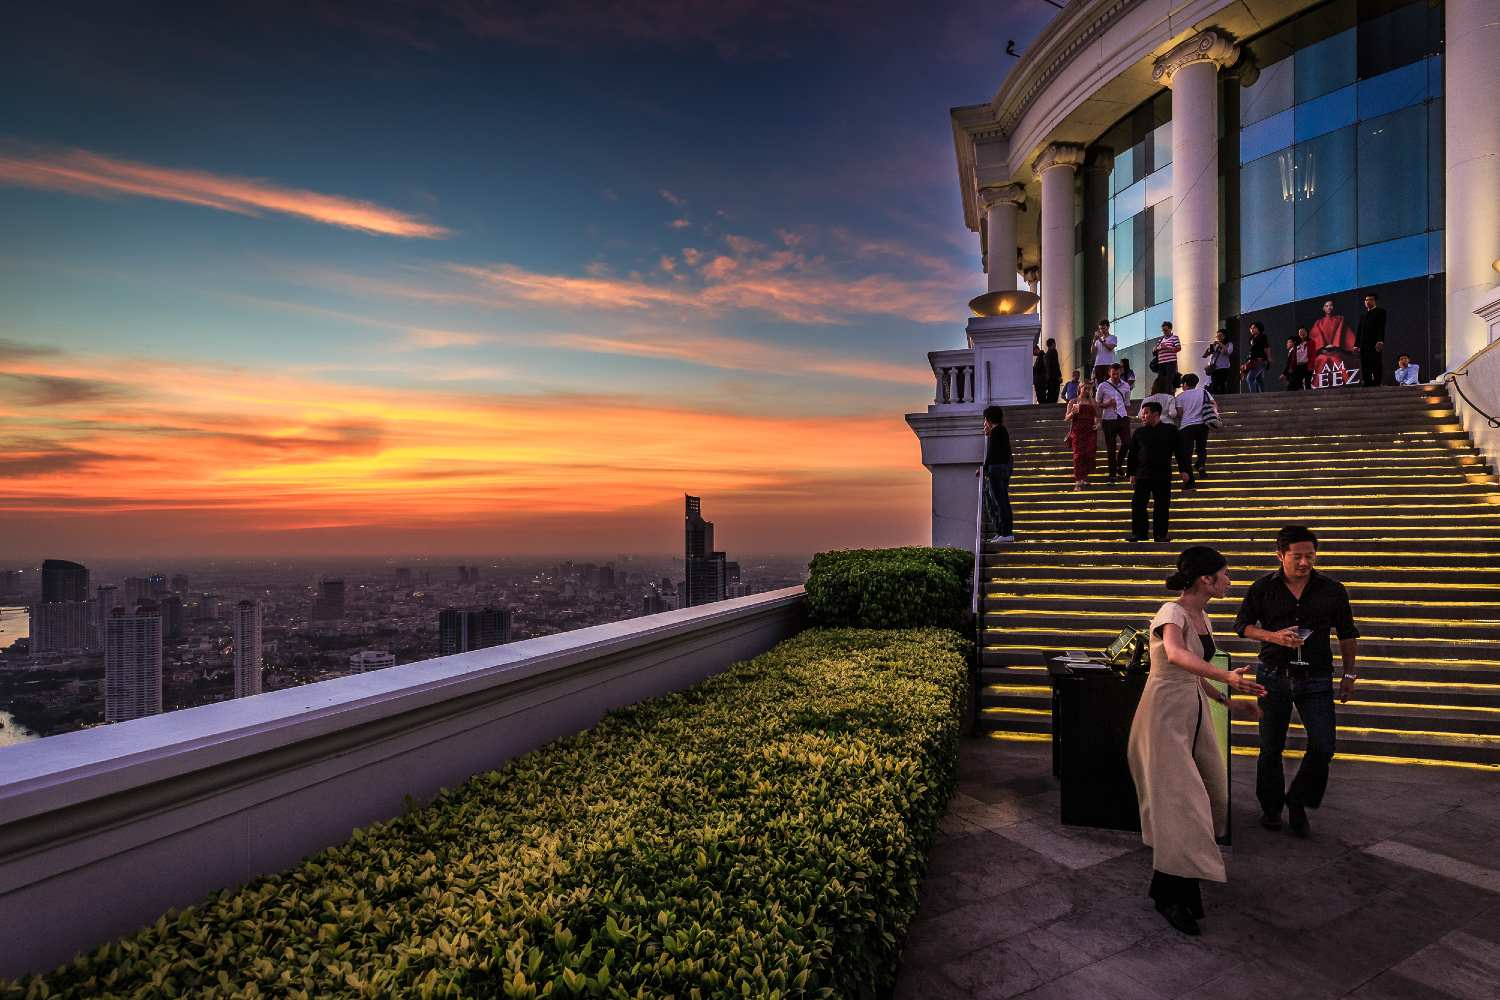 People on the stairs famous from the movie The Hangover at Sirocco @ Lebua